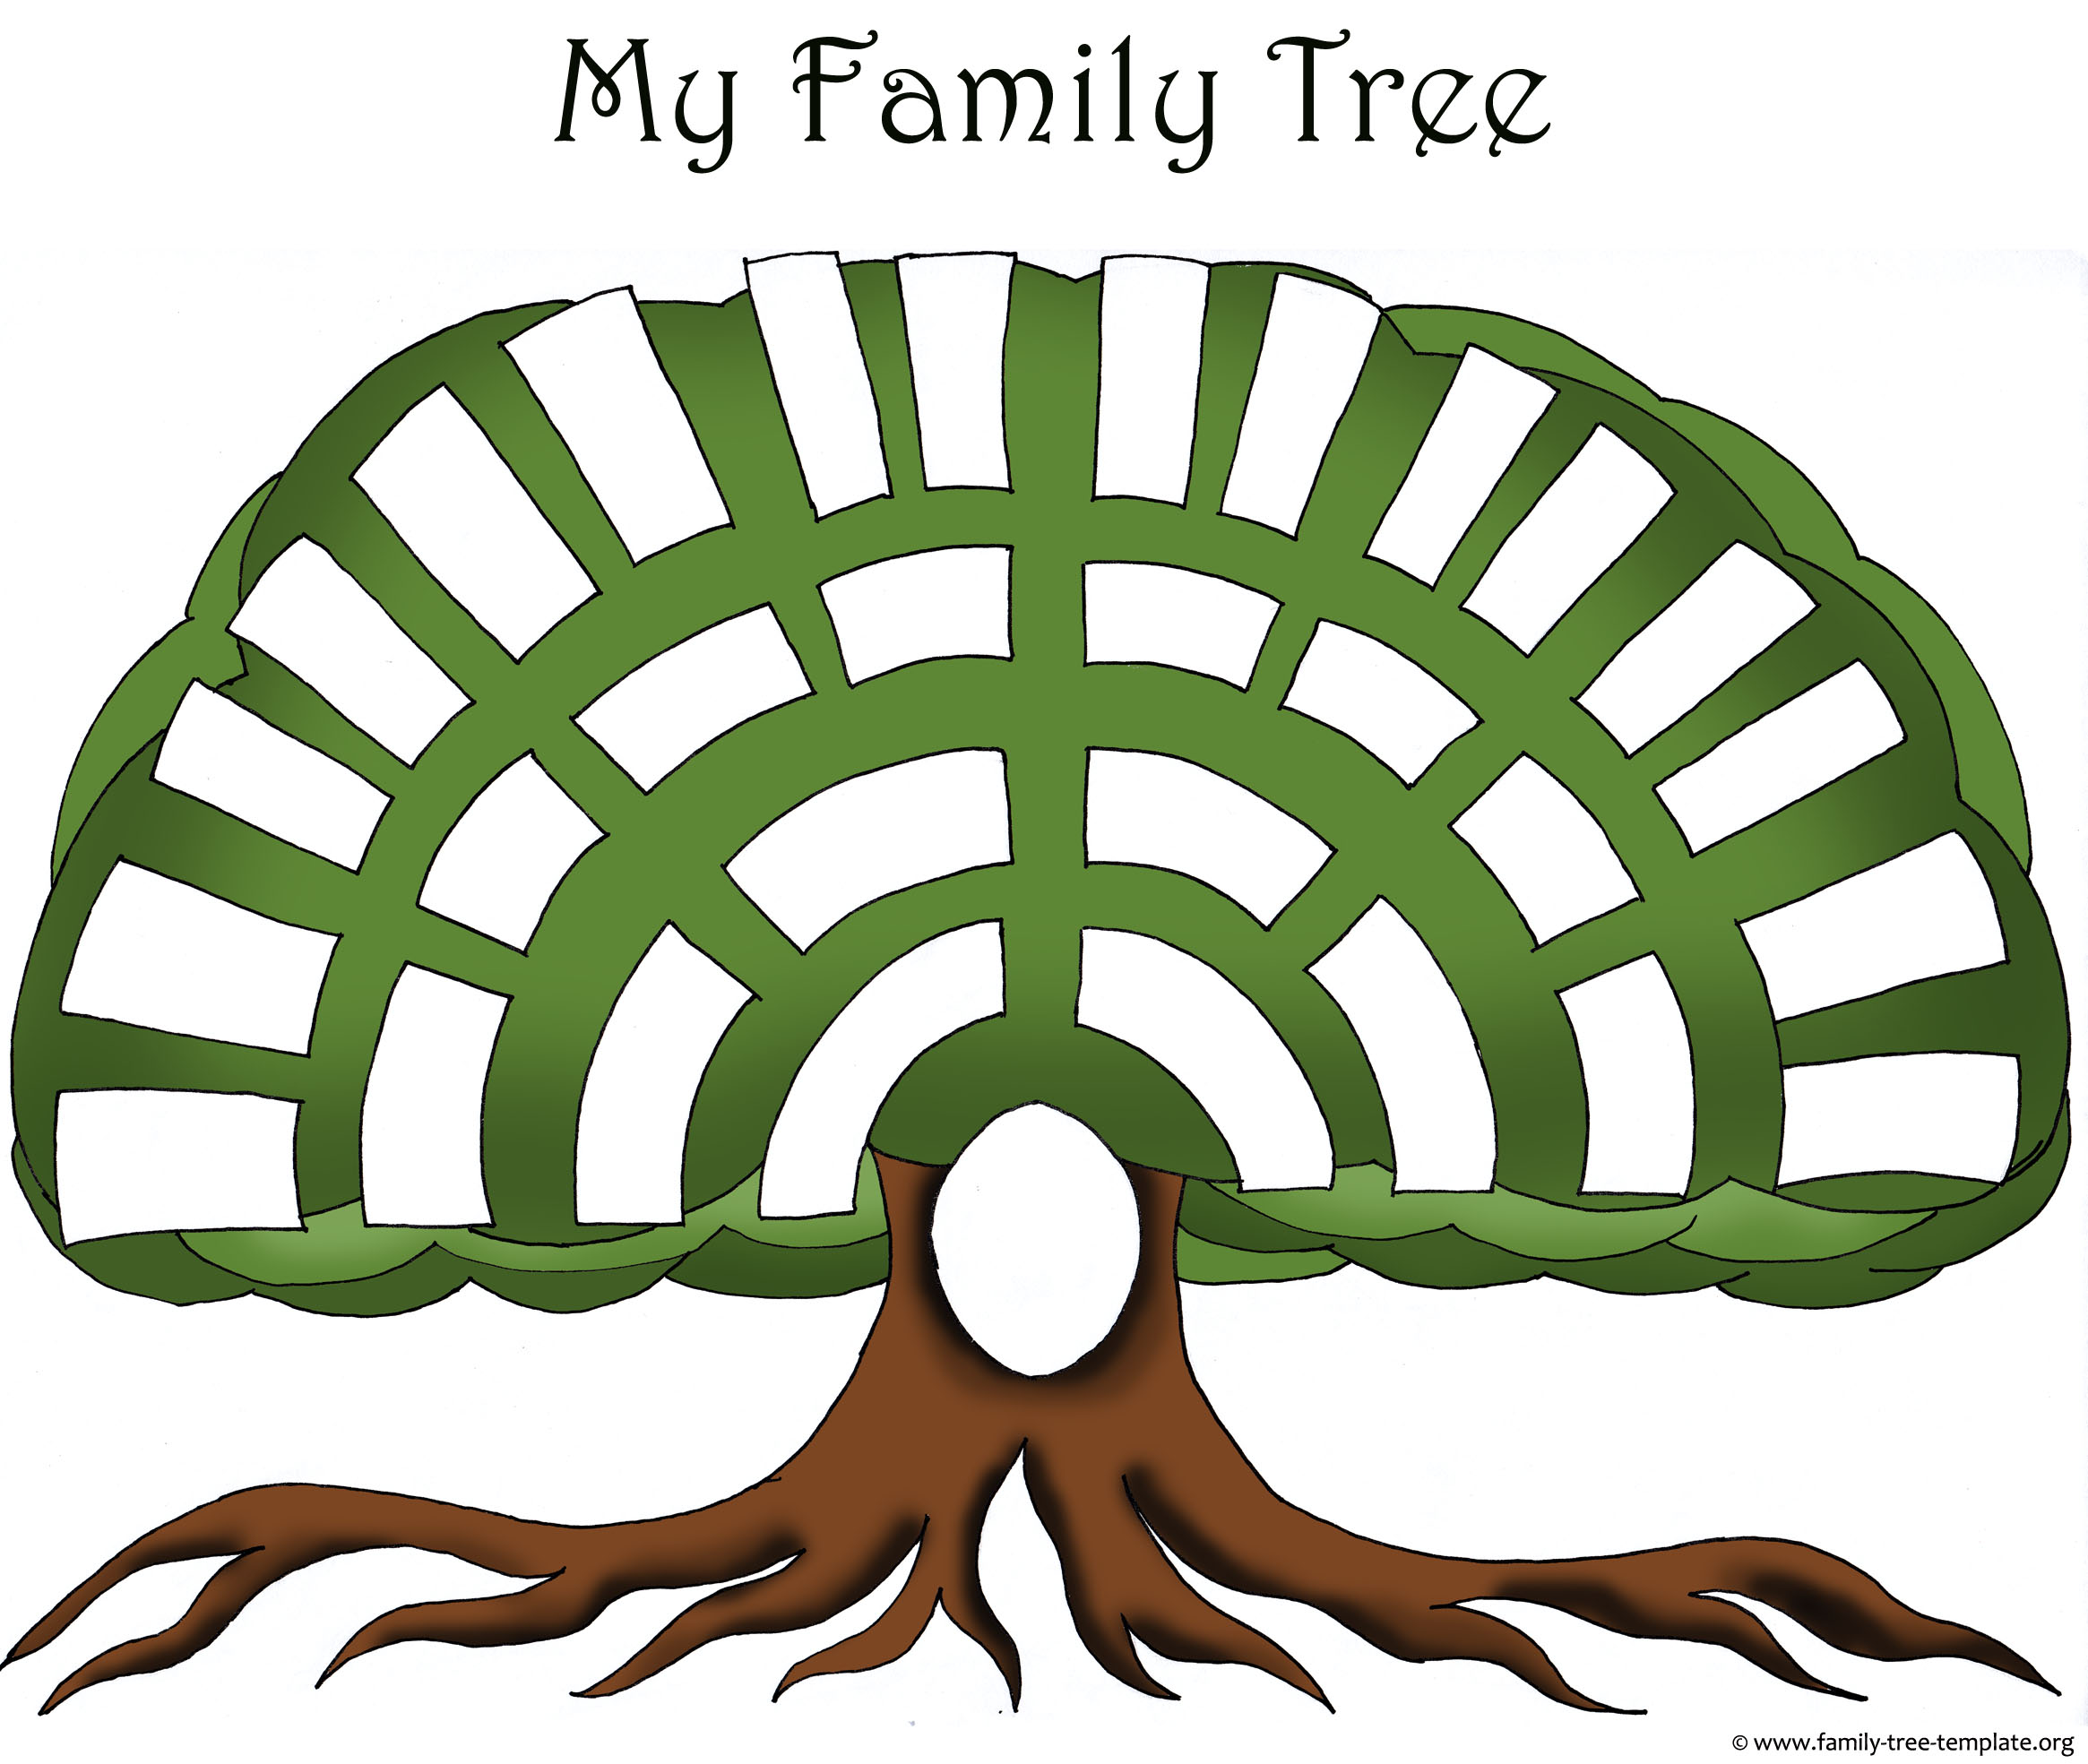 Family tree templates genealogy clipart for your for Genealogy templates for family trees